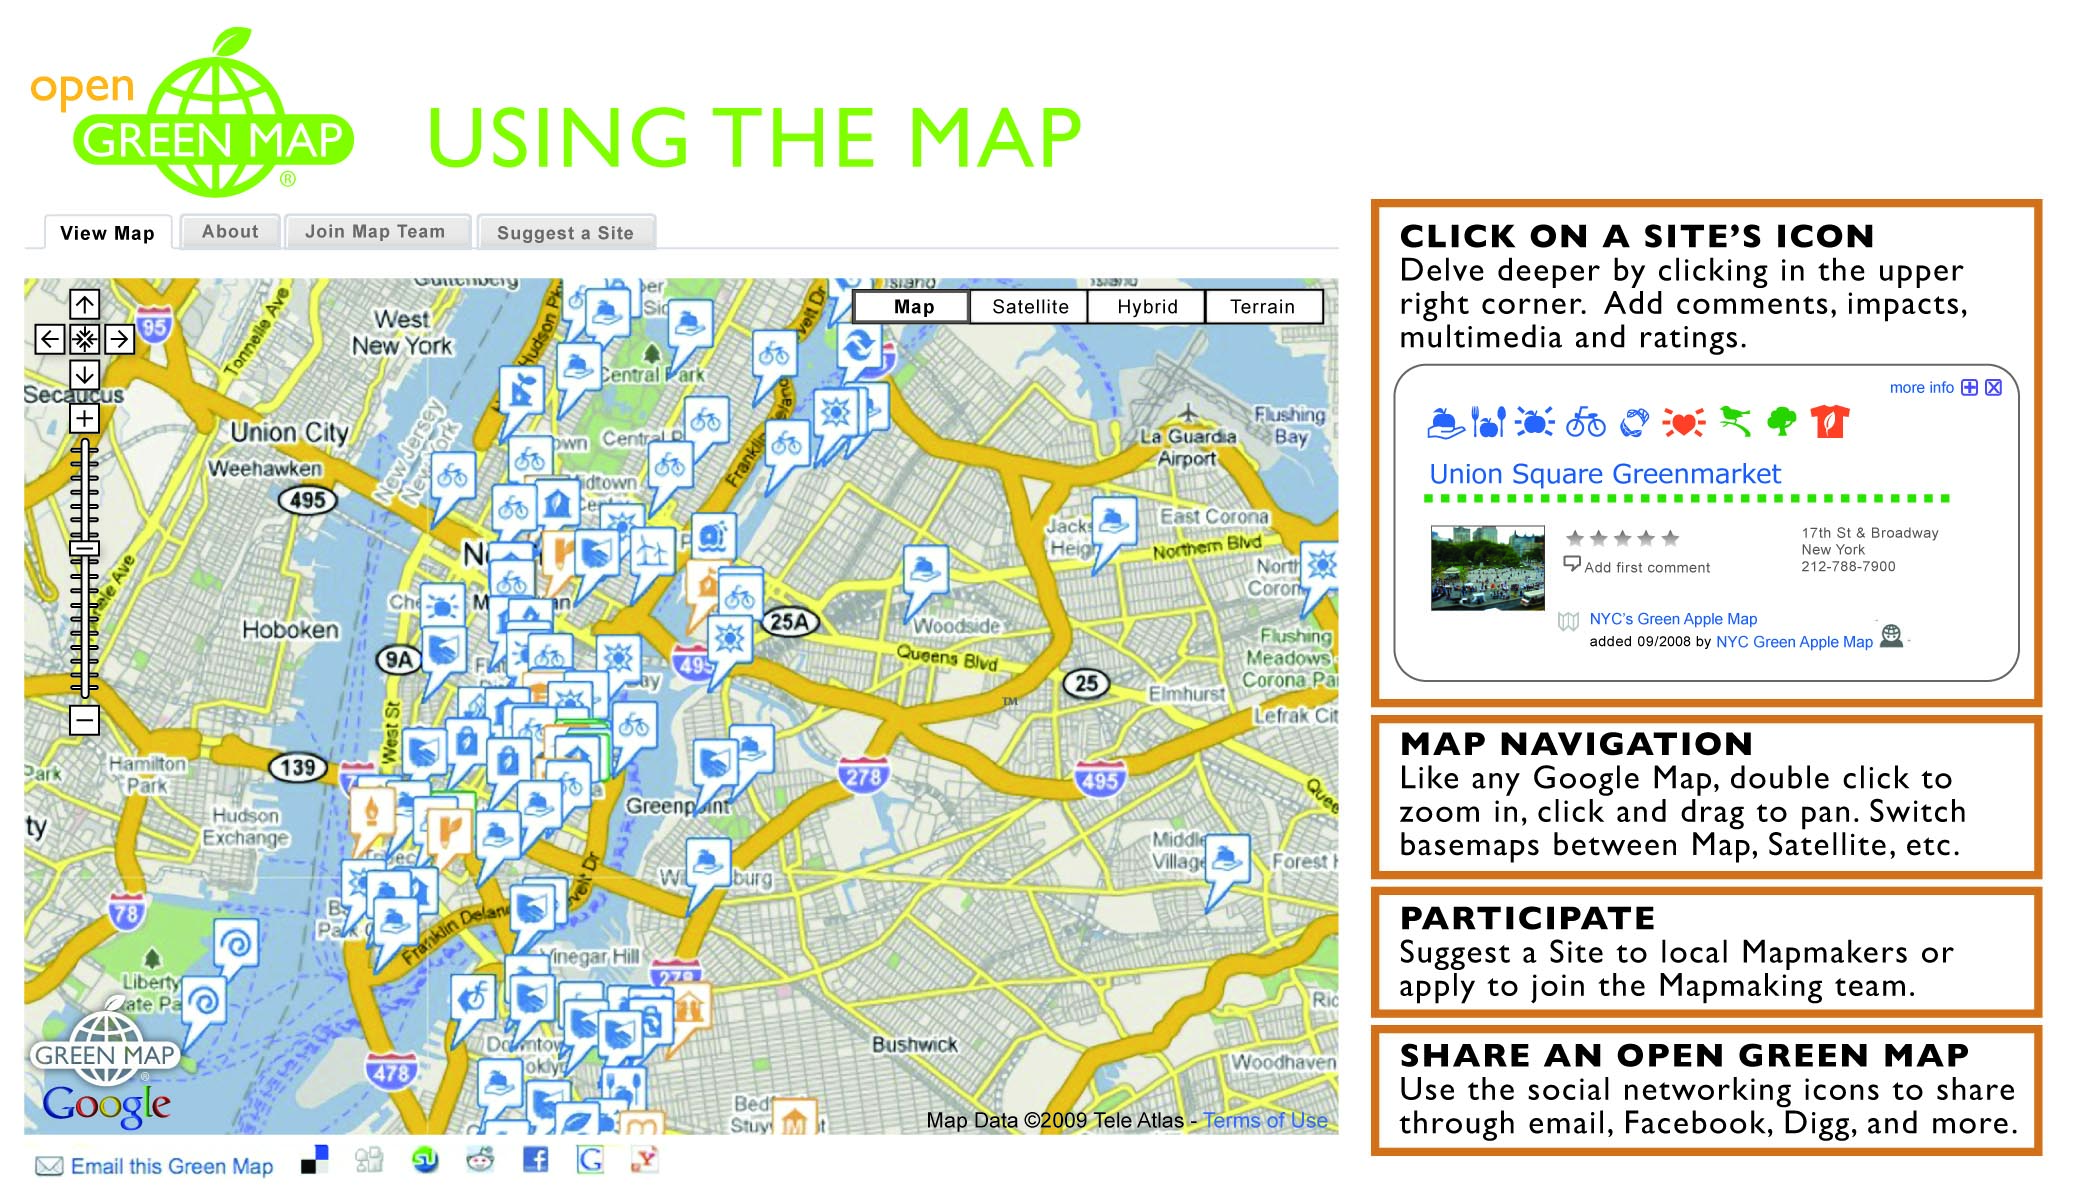 Share And Promote Open Green Maps Open Green Map - Picture of a map